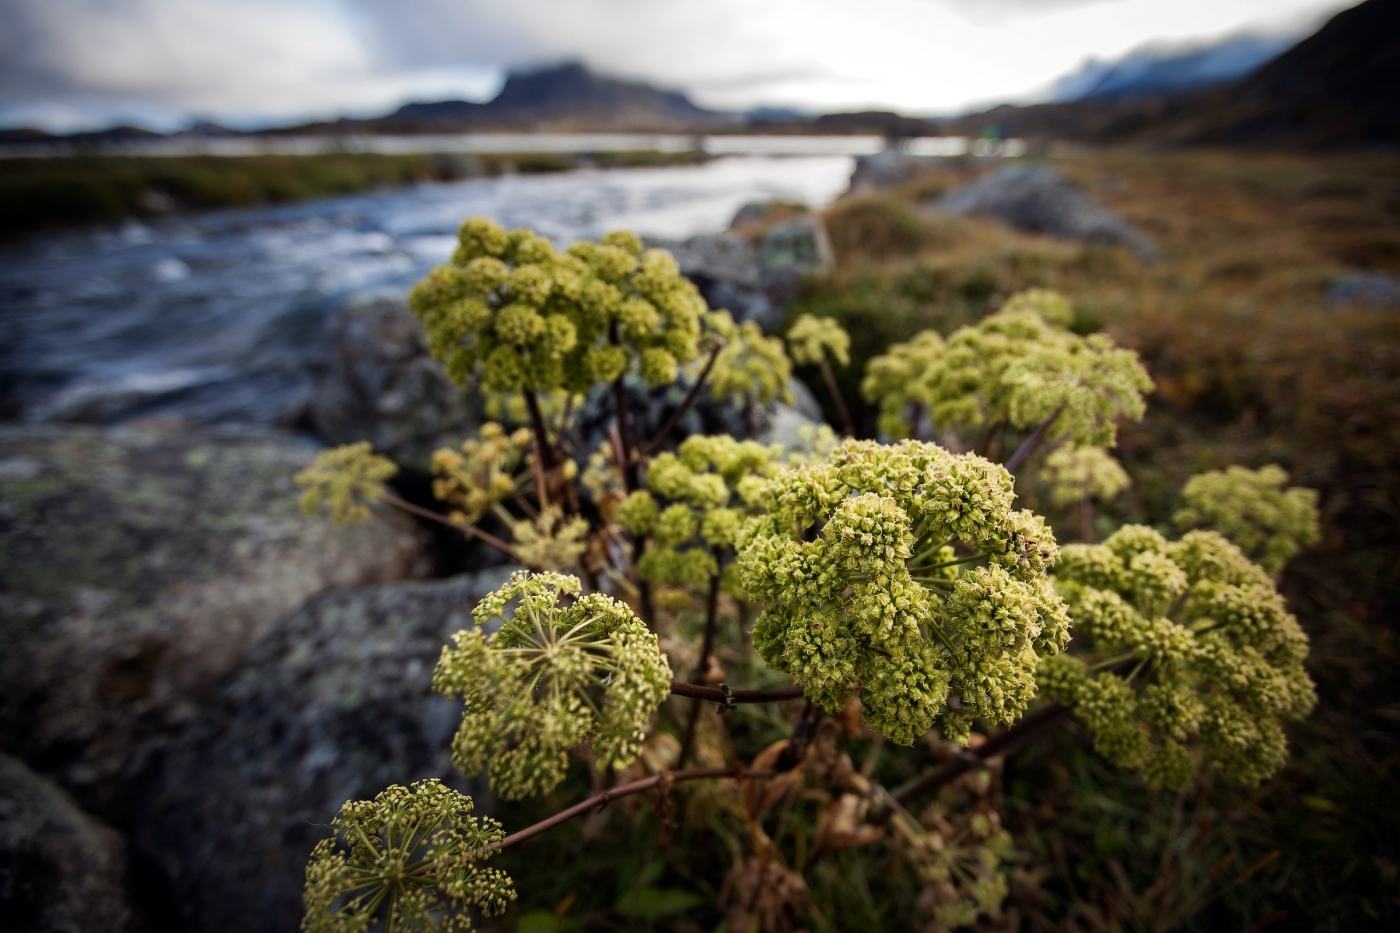 Angelica growing on the river banks of the Erfalik in Greenland. Photo by Mads Pihl - Visit Greenland